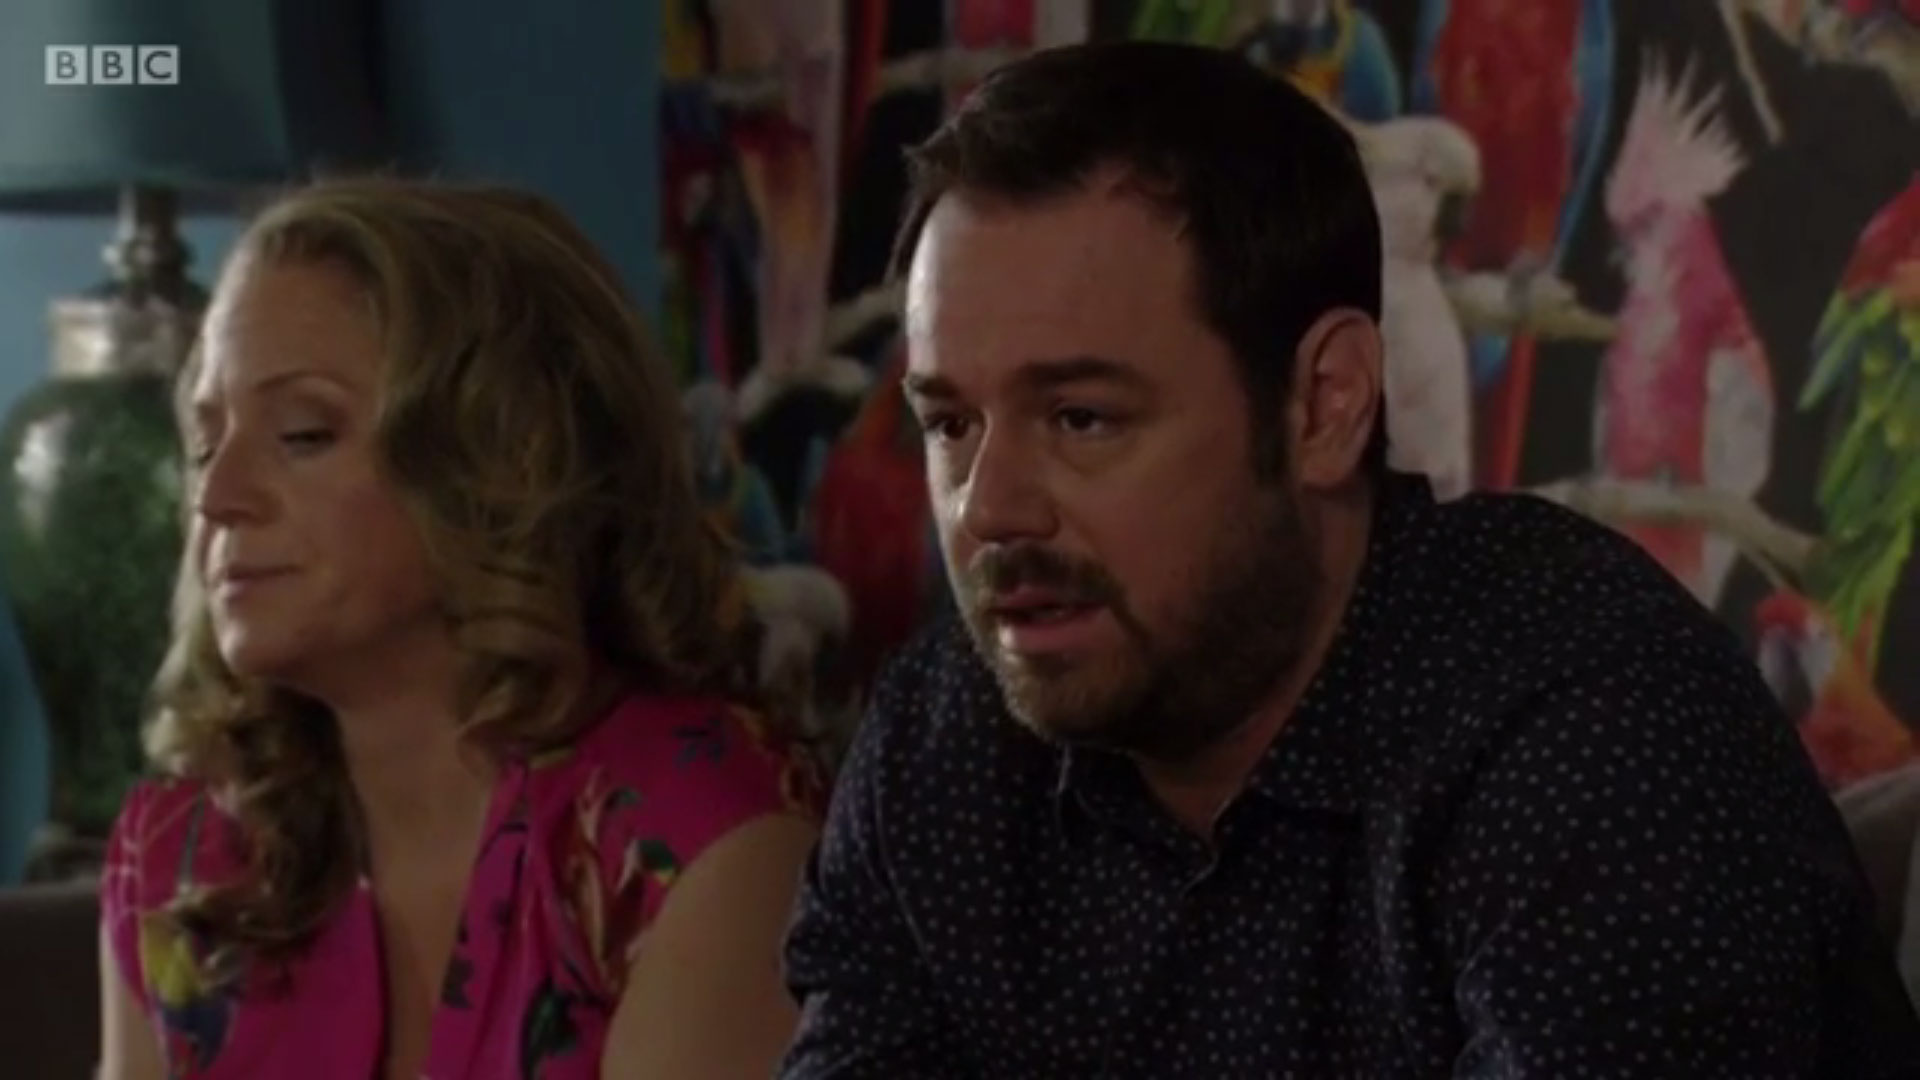 EastEnders fans can't get over Mick and Linda Carter's 'Brexit bants'